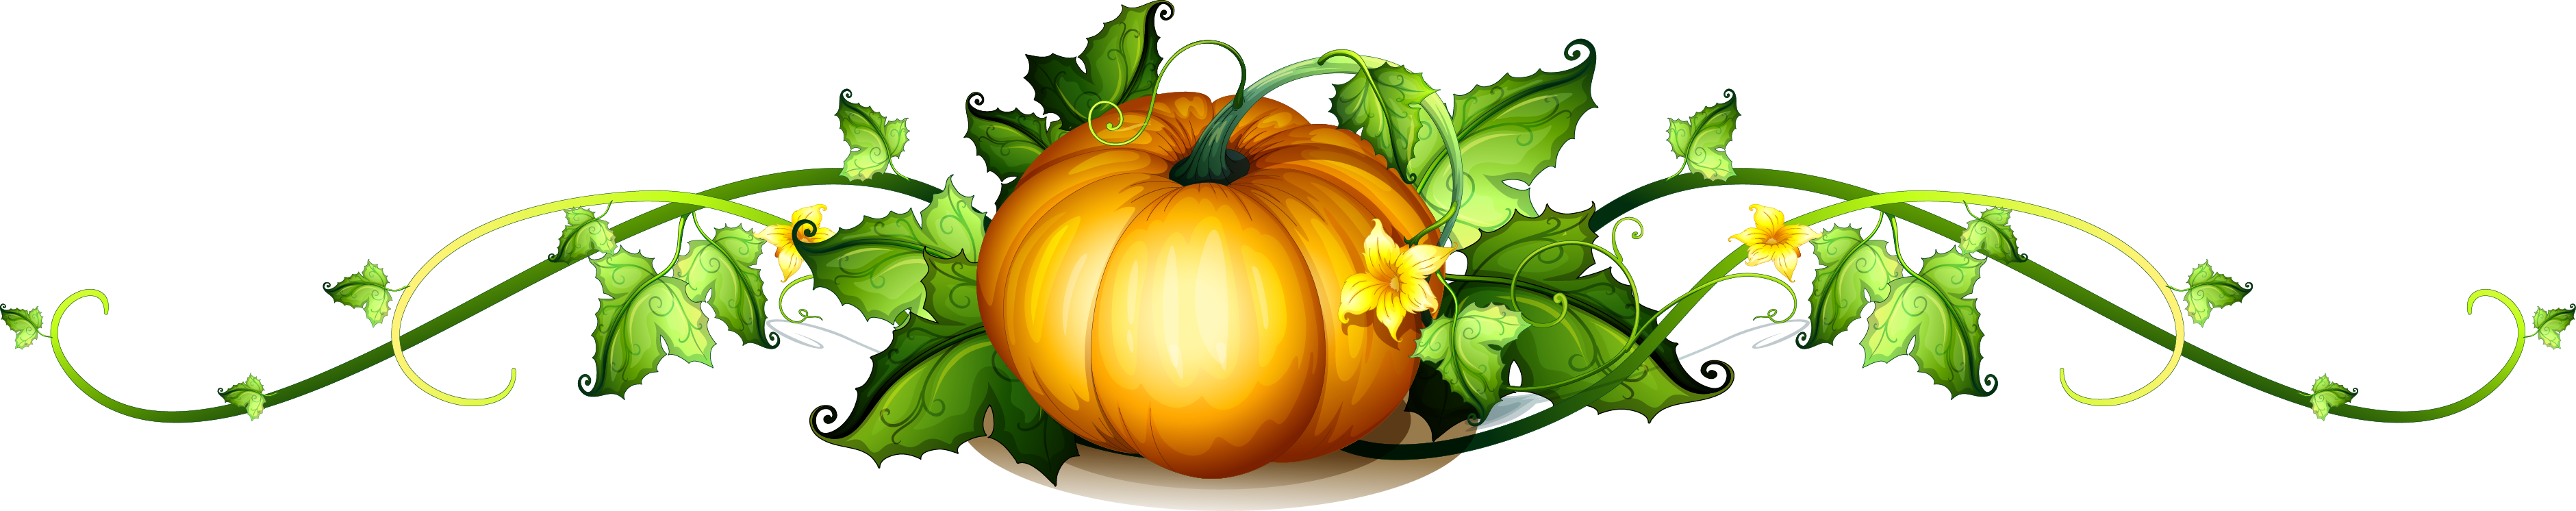 Pumpkin leaf clipart picture library stock Pumpkin Vine Royalty-free Clip art - pumpkin,vegetables,leaf 3762 ... picture library stock